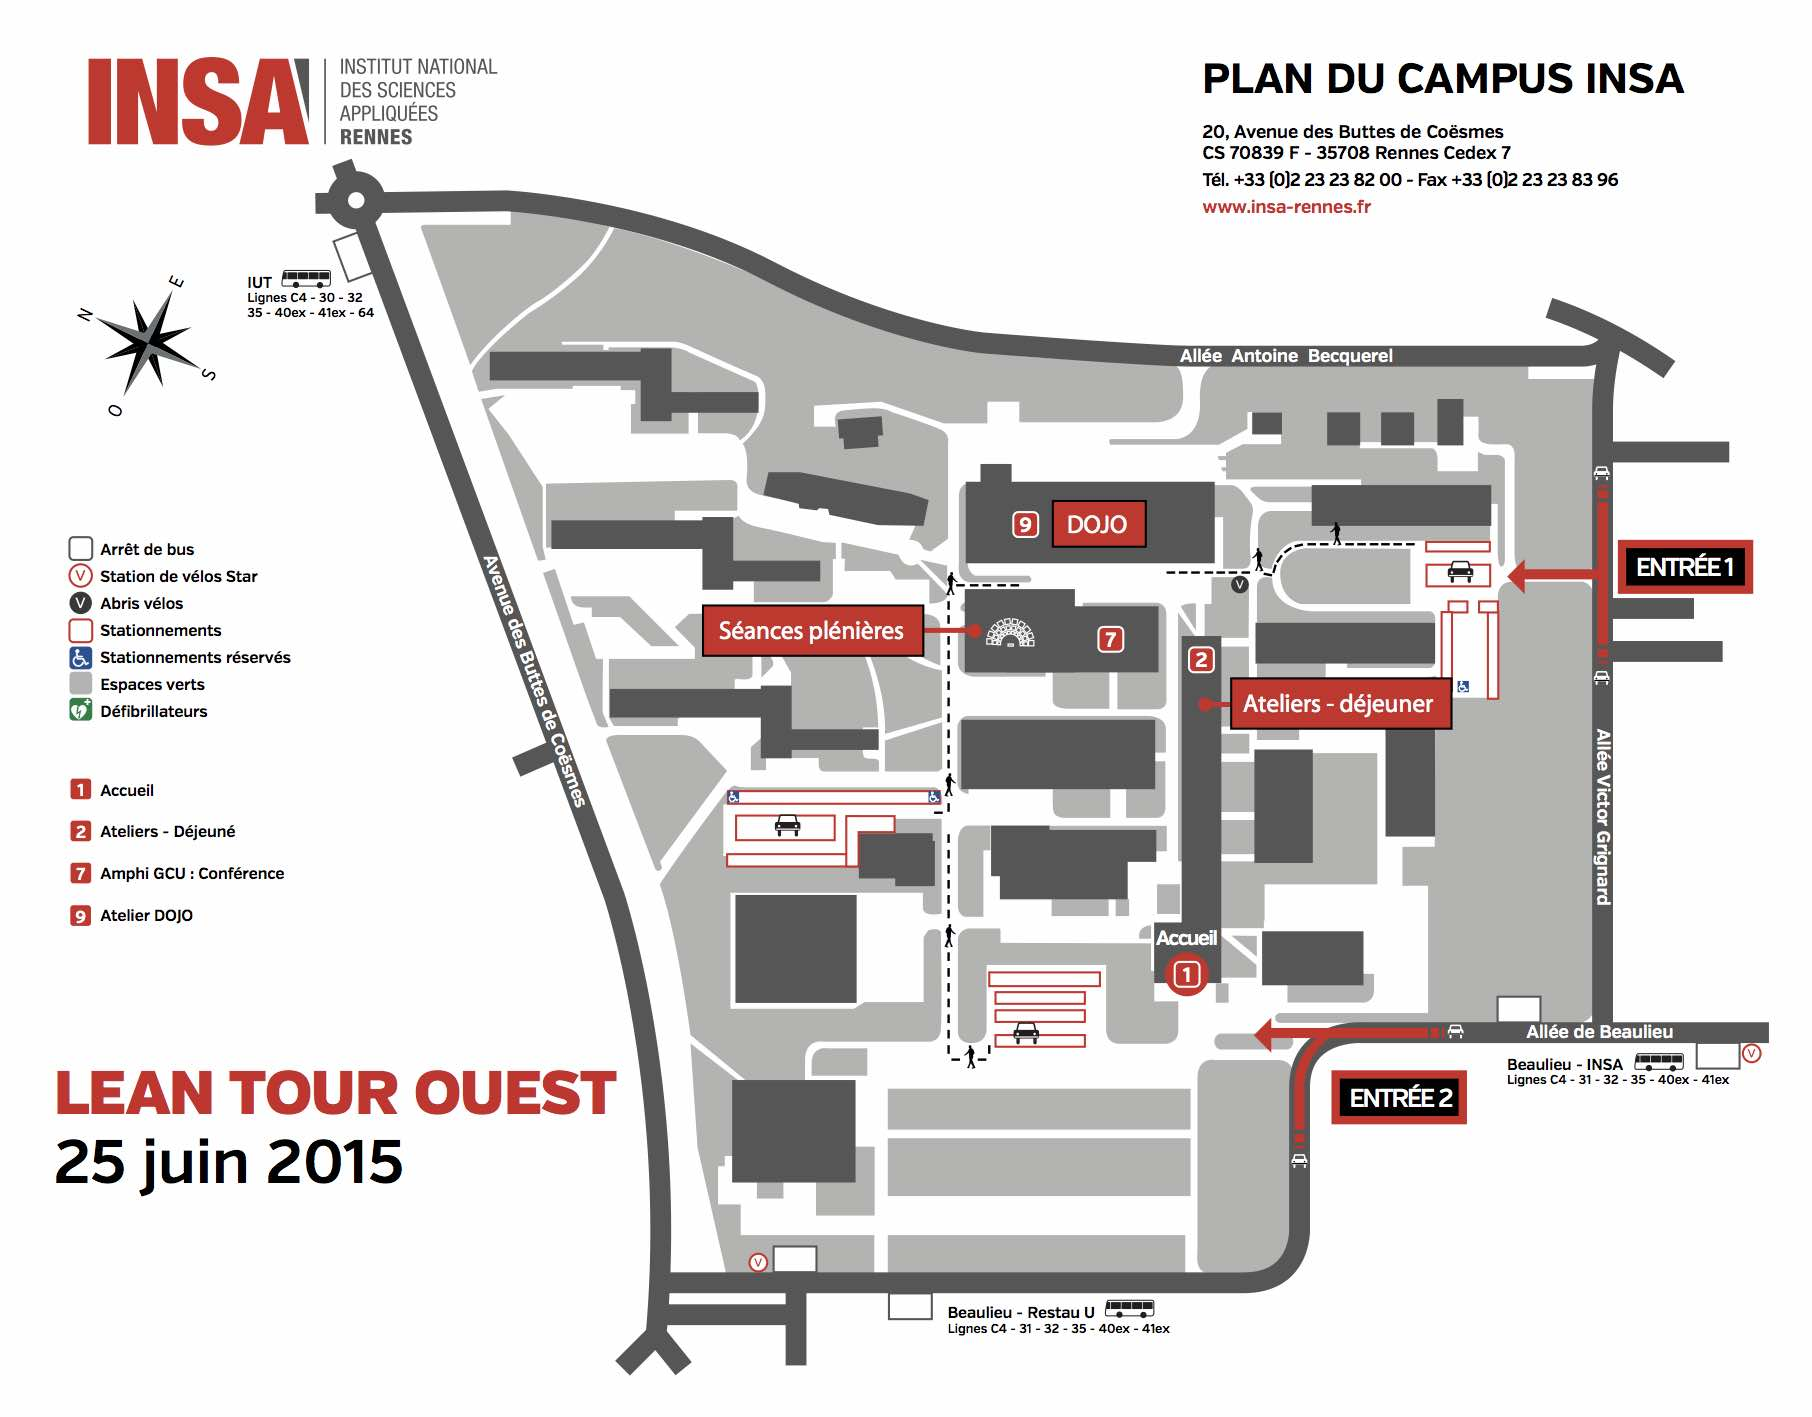 INSA PLAN CAMPUS